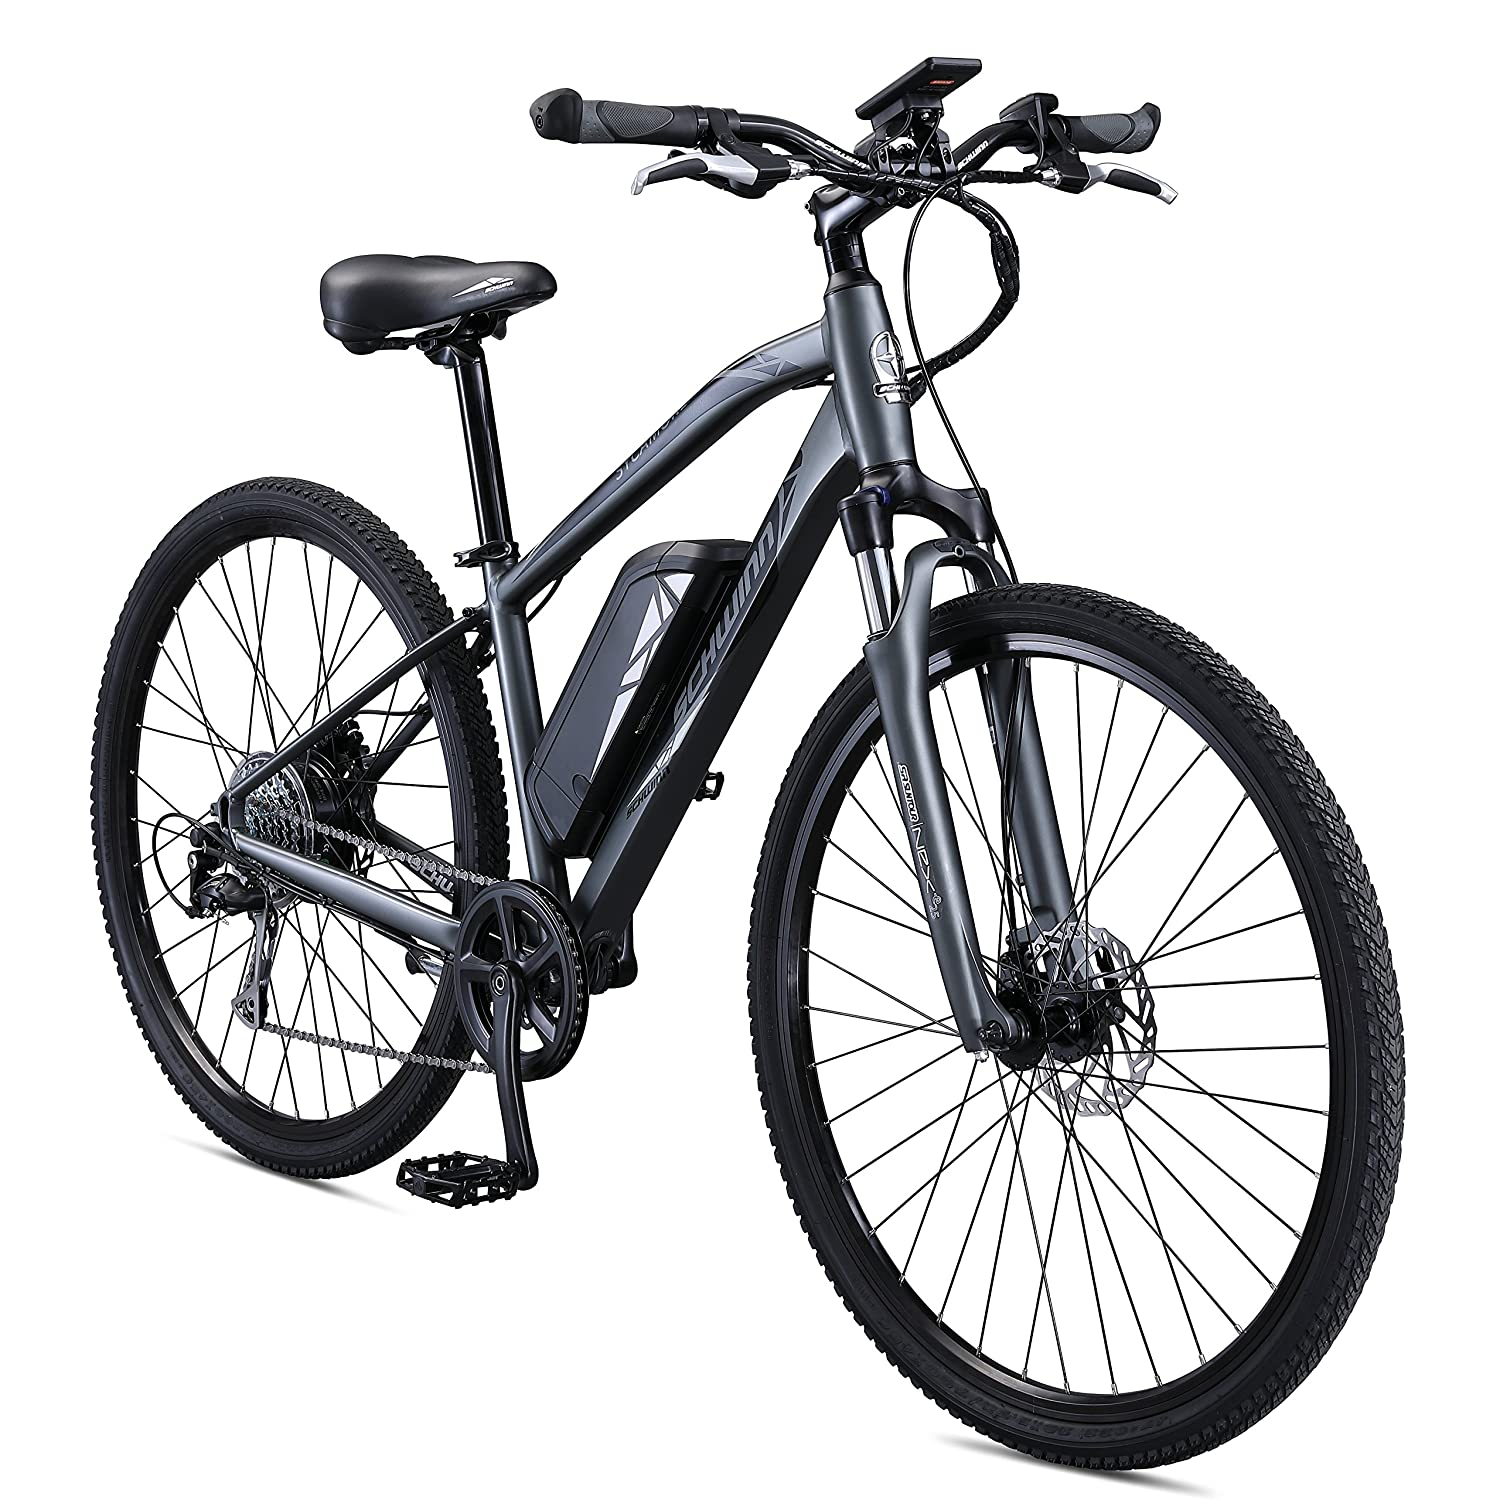 Schwinn Sycamore 350 Watt hub-Drive, Mountain Hybrid, Electric Bicycle, 8 speeds, Mens Size